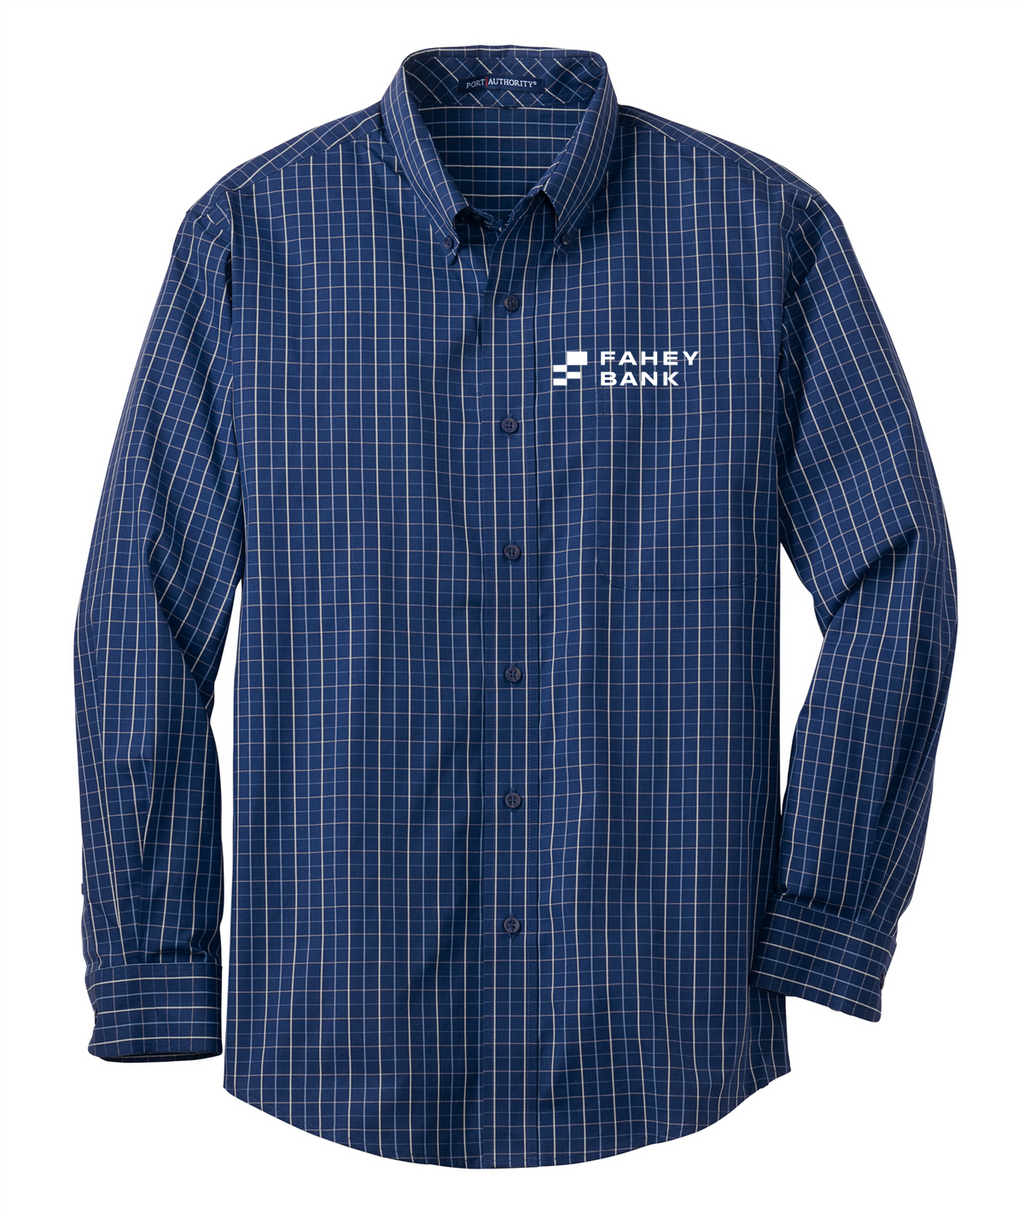 Port Authority® Tattersall Easy Care Shirt FAHEY Bank